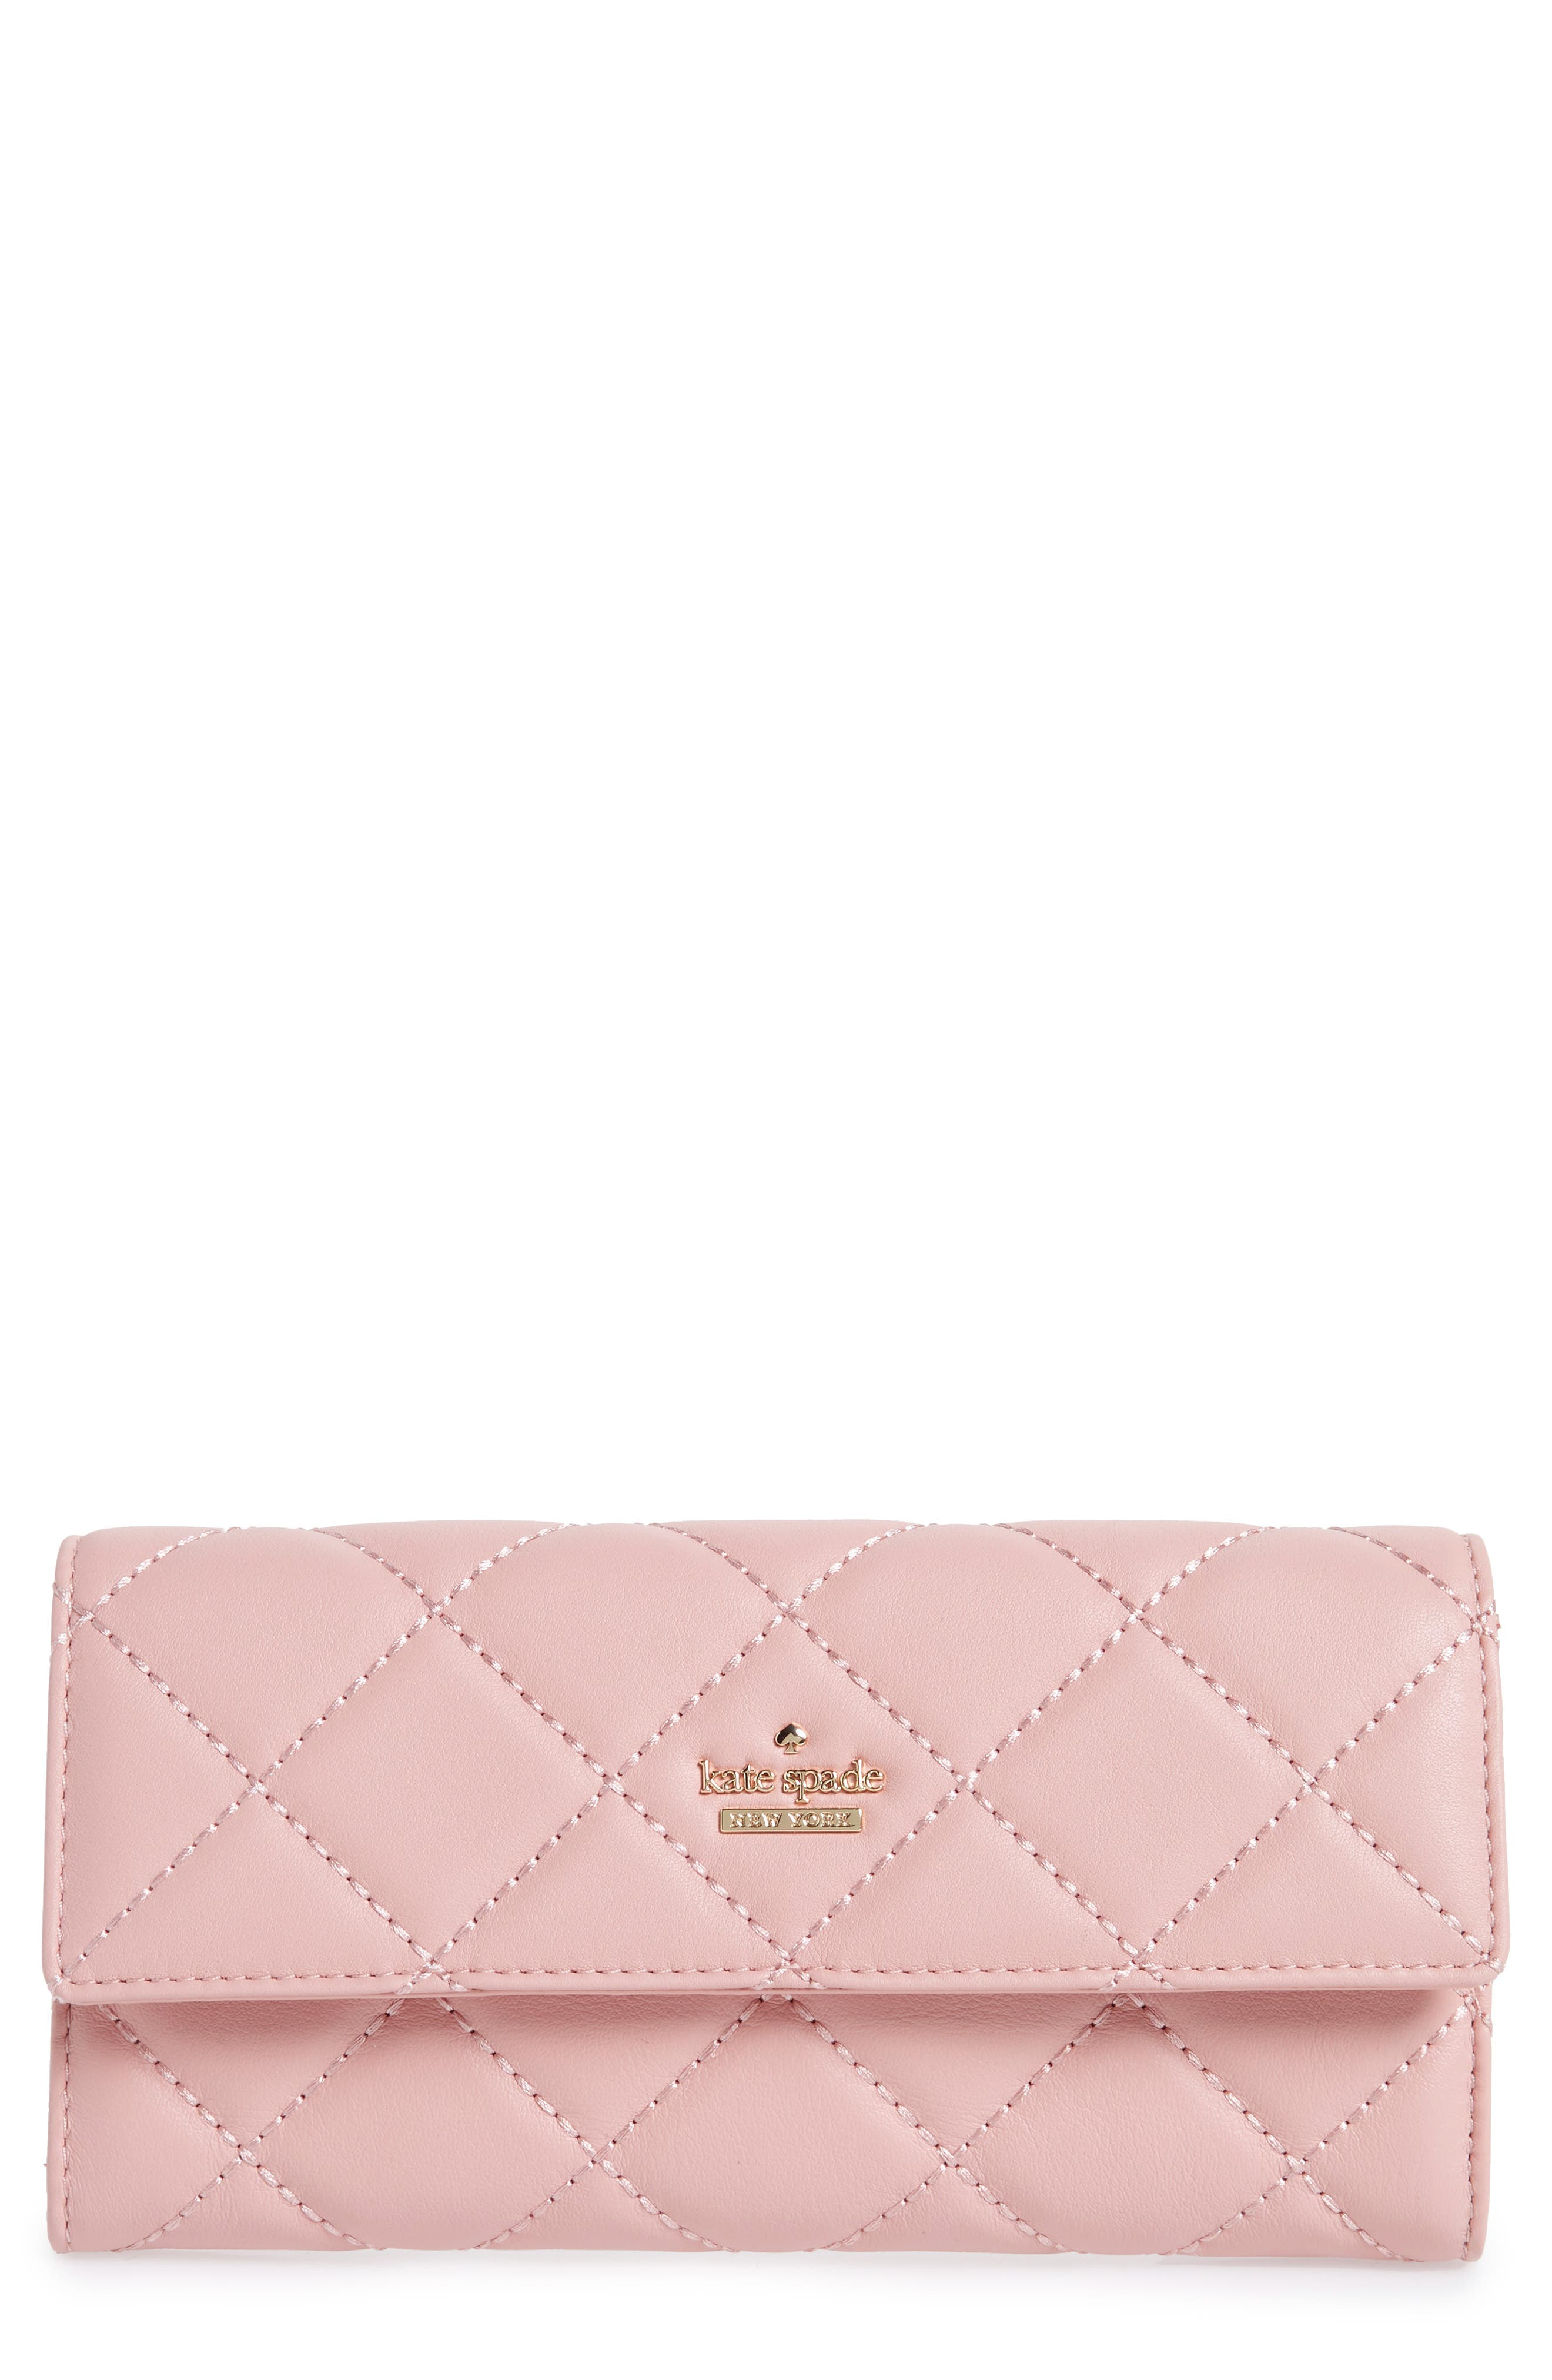 emerson place - kinsley quilted leather wallet,                             Main thumbnail 1, color,                             650